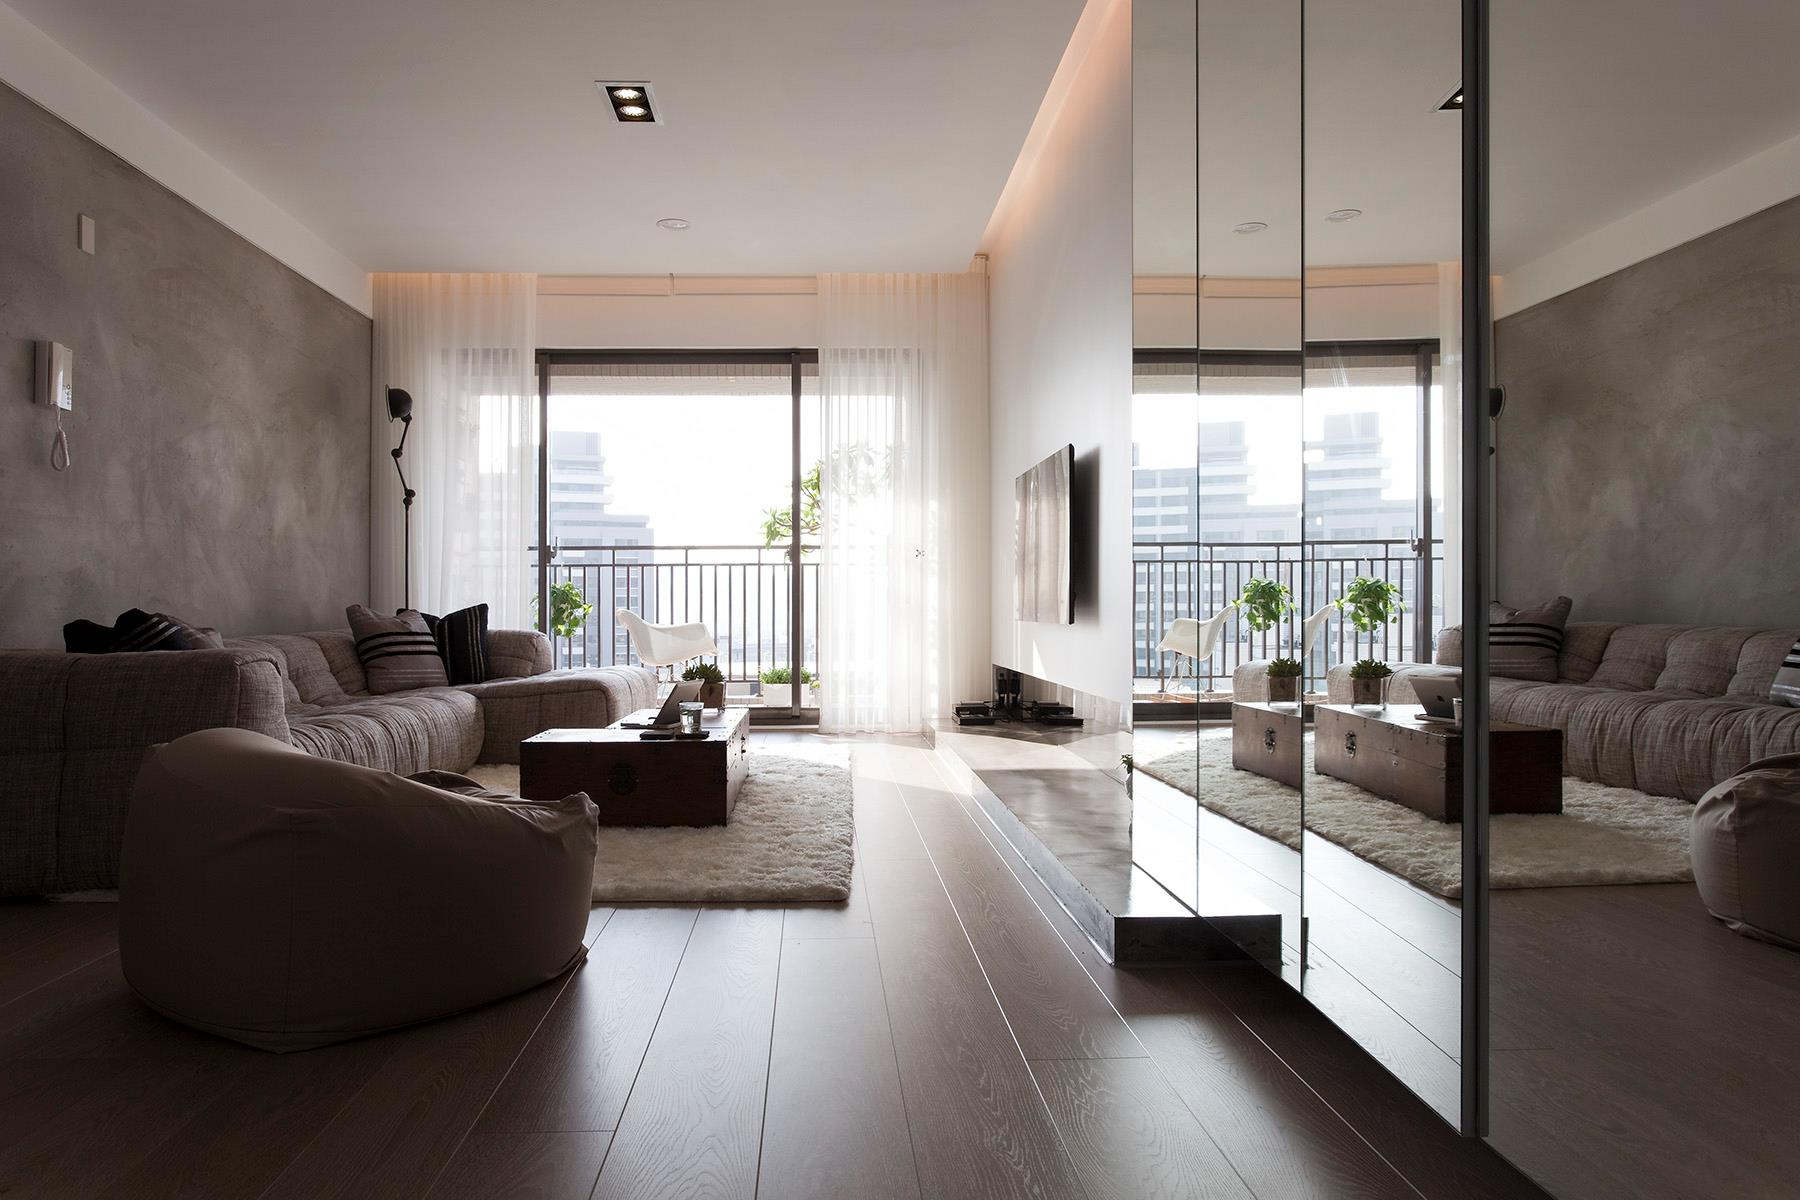 Contemporary apartment in taiwan by fertility design